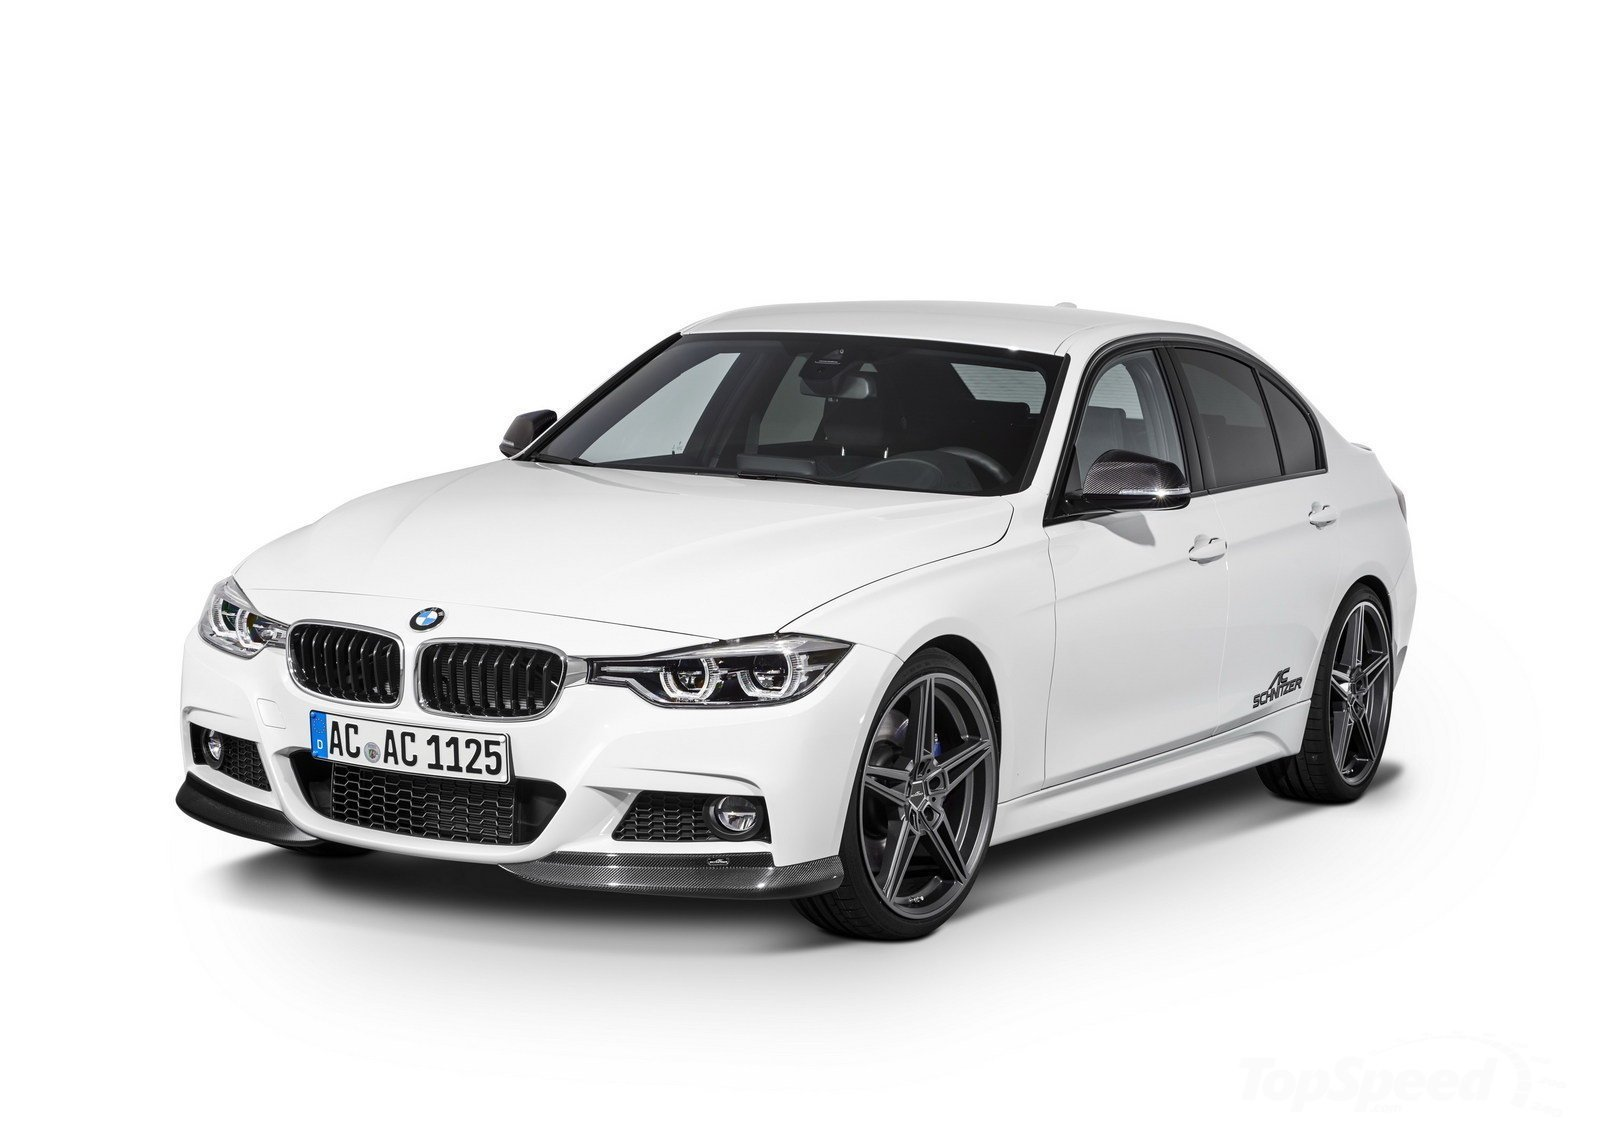 Latest 2016 Bmw 3 Series Facelift Gets The Ac Schnitzer Treatment Free Download